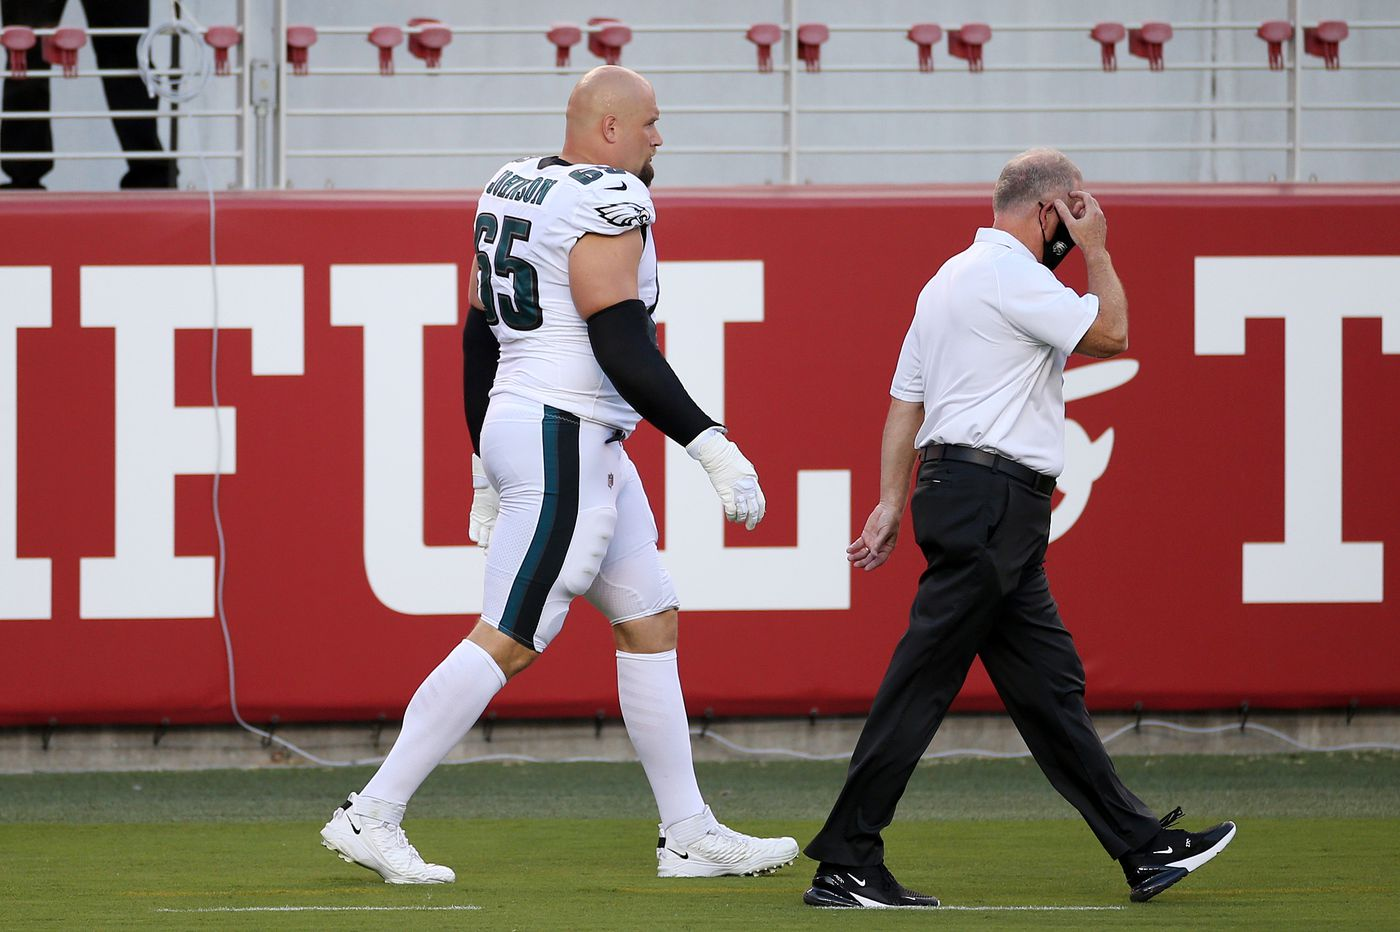 Doug Pederson declines comment on Lane Johnson's second opinion; Eagles tackle didn't practice Wednesday